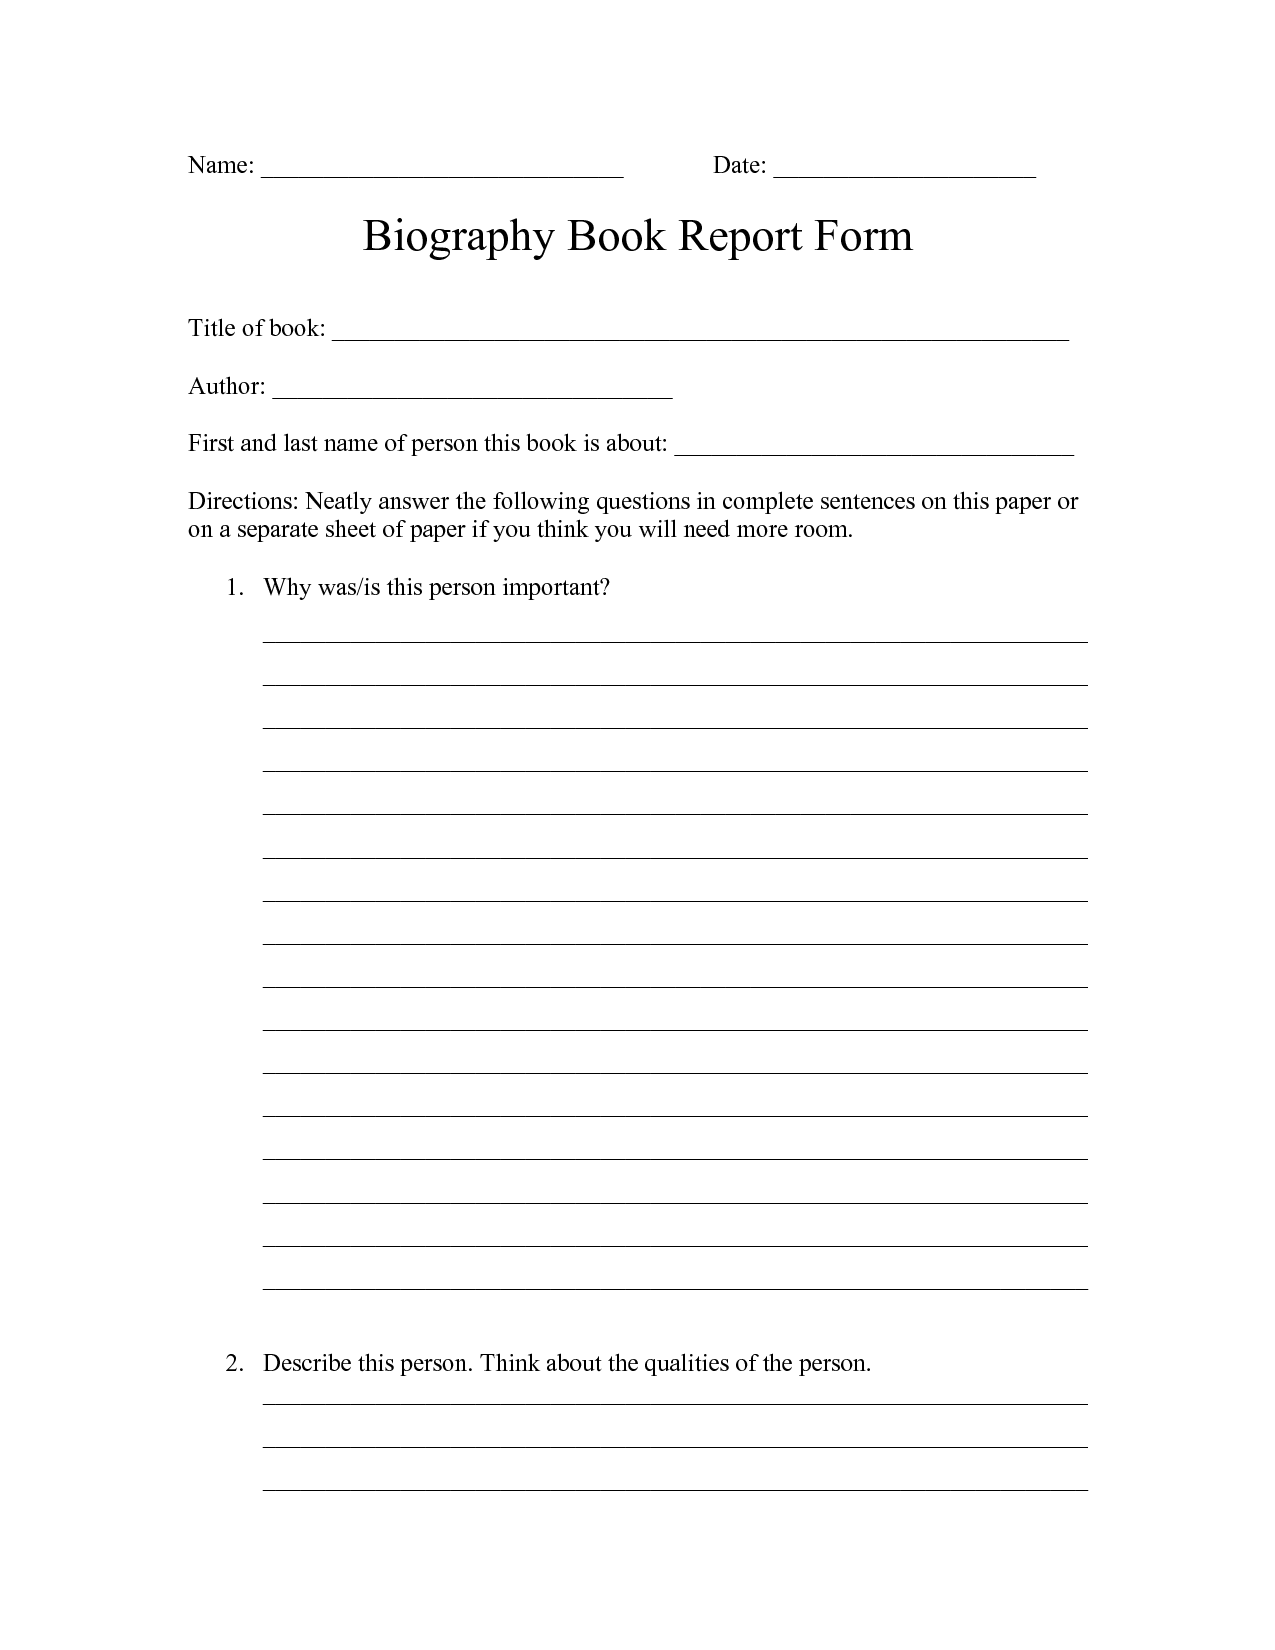 Book Report Form Biography Elementary